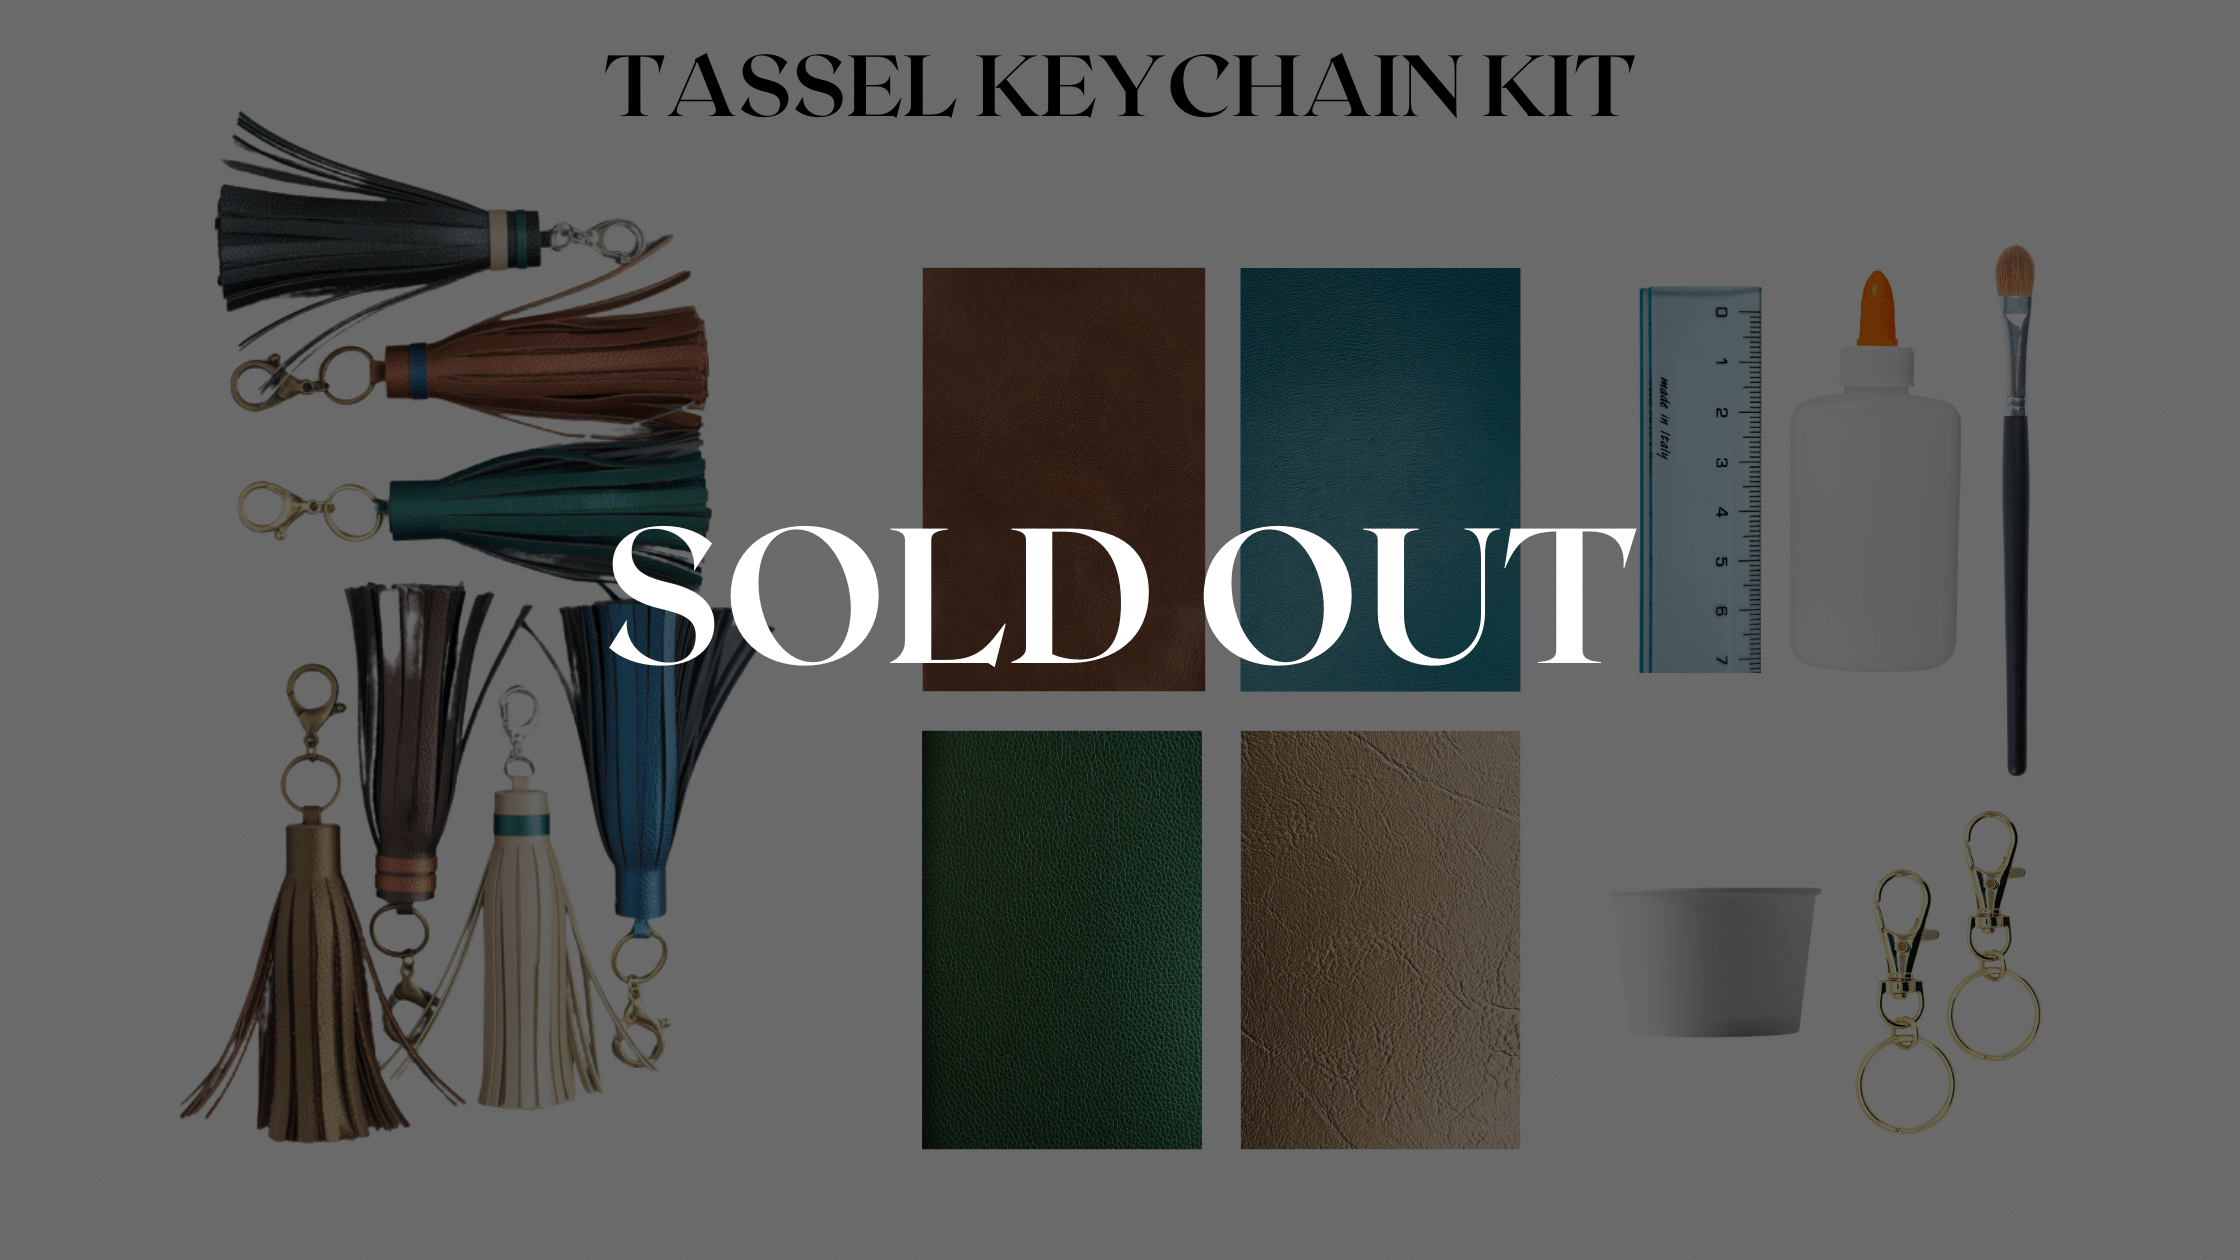 Our leather craft kit is sold out, but you can leave us your email to be alerted for a restock